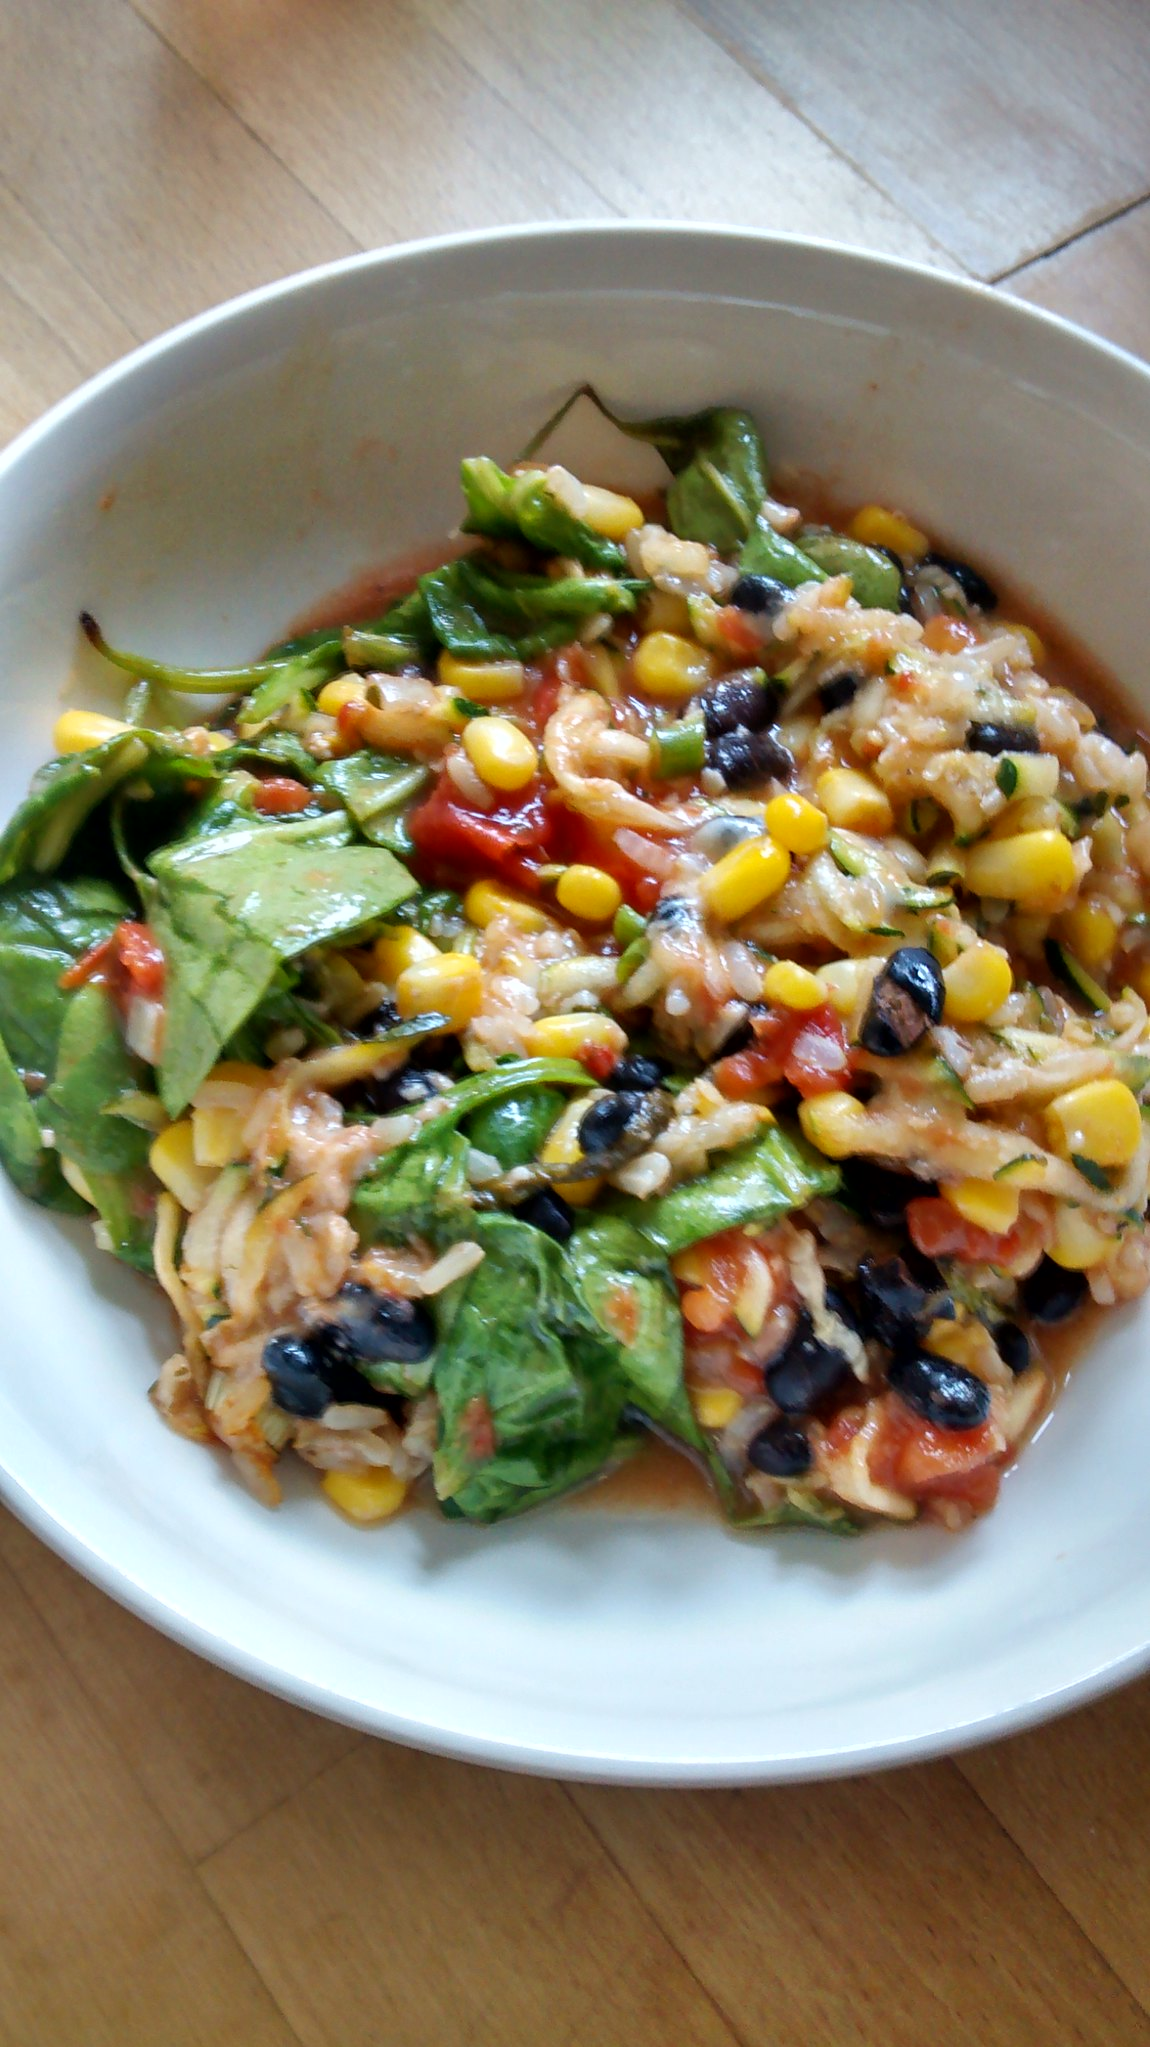 Black bean casserole in bowl